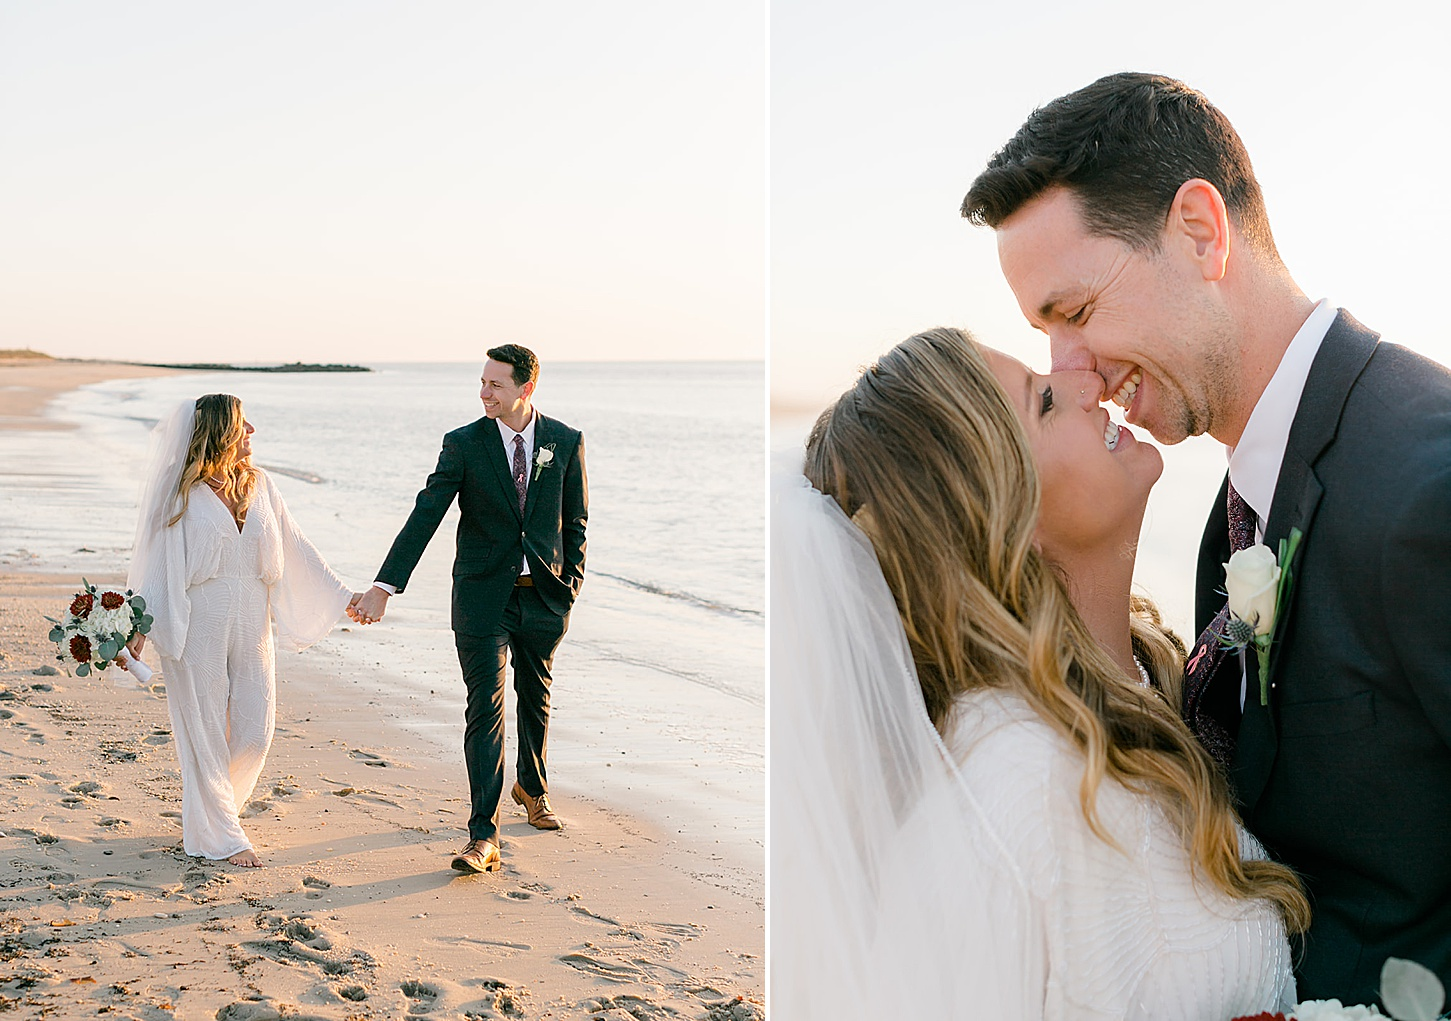 Cape May Intimate Wedding Photography by Magdalena Studios 0012